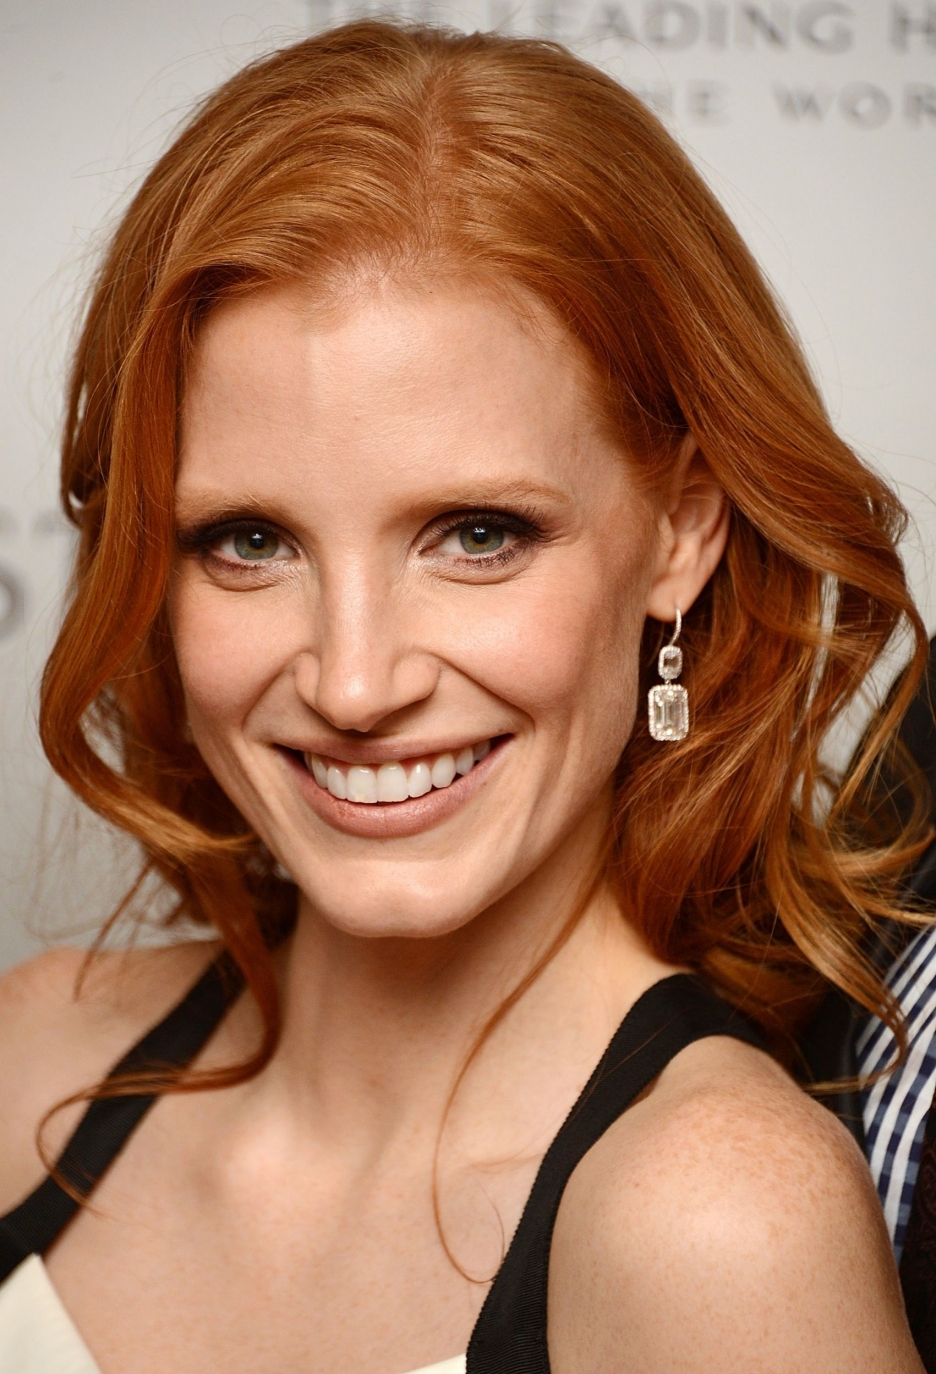 936full-jessica-chastain-jessica-chastain-will-she-be-poison-ivy-spider-woman-or-batwoman.jpeg